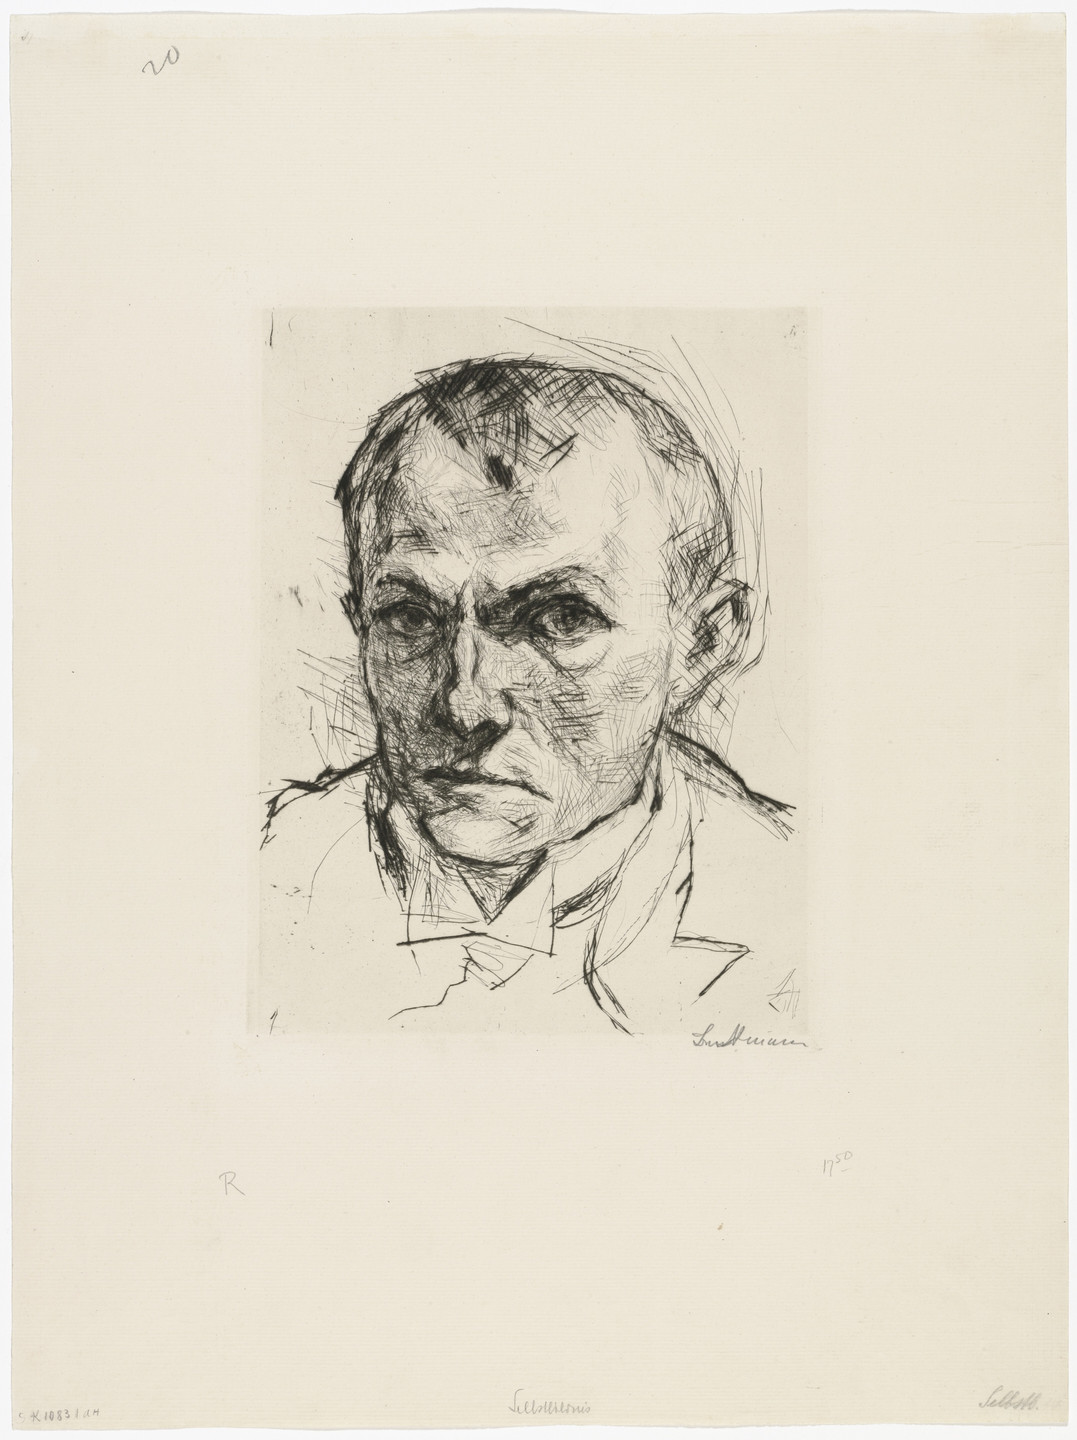 Max Beckmann. Self-Portrait (Selbstbildnis). 1914, published 1918